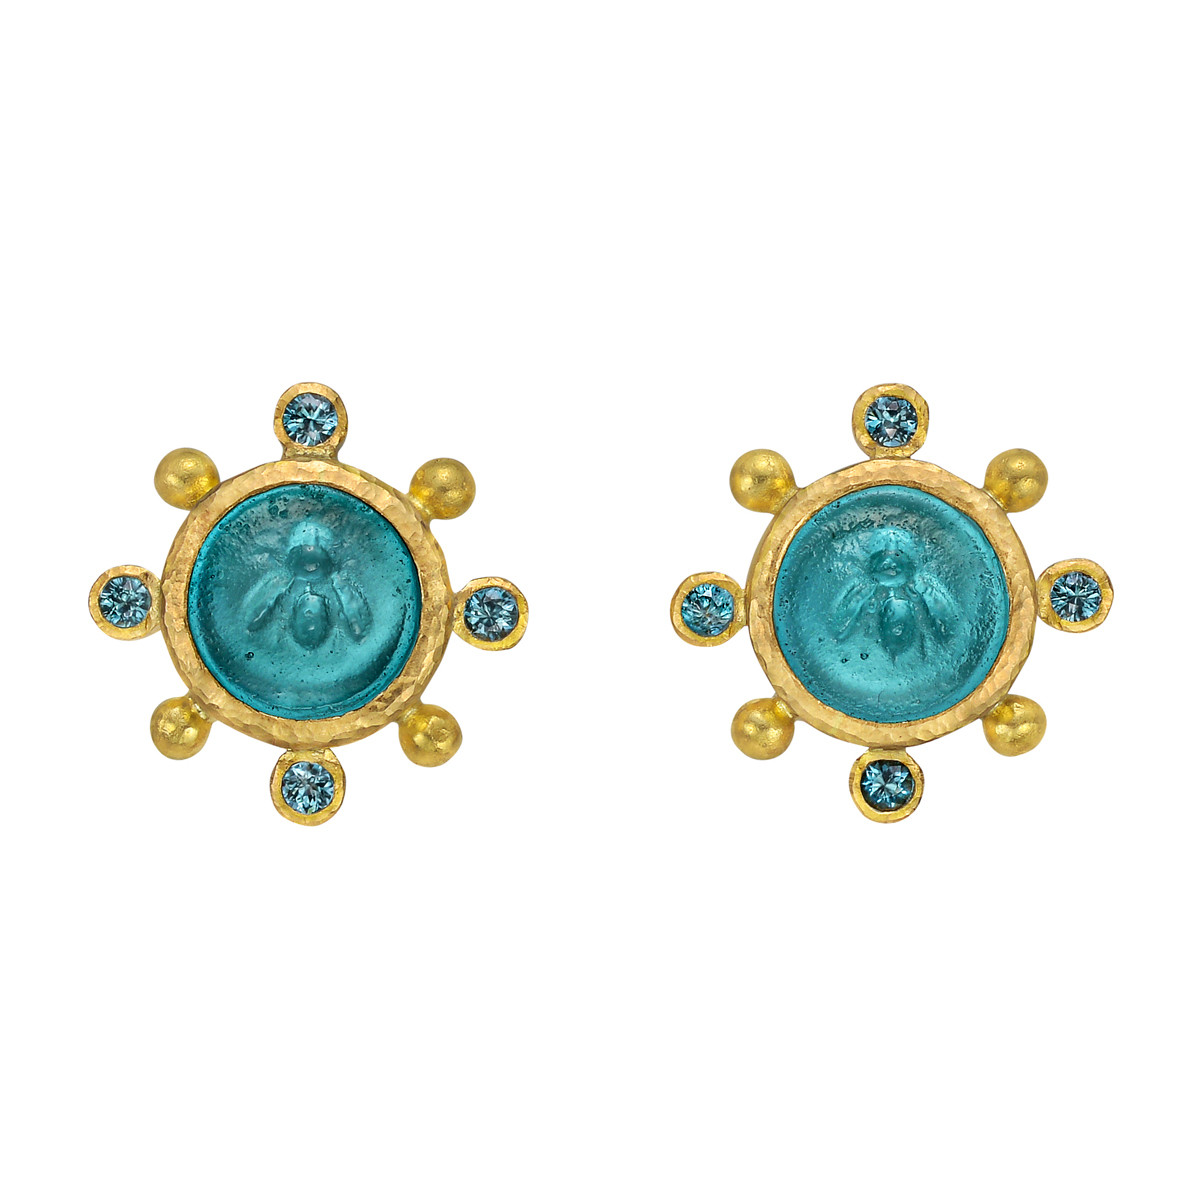 19k Yellow Gold 'Tiny Bee' Intaglio Earrings